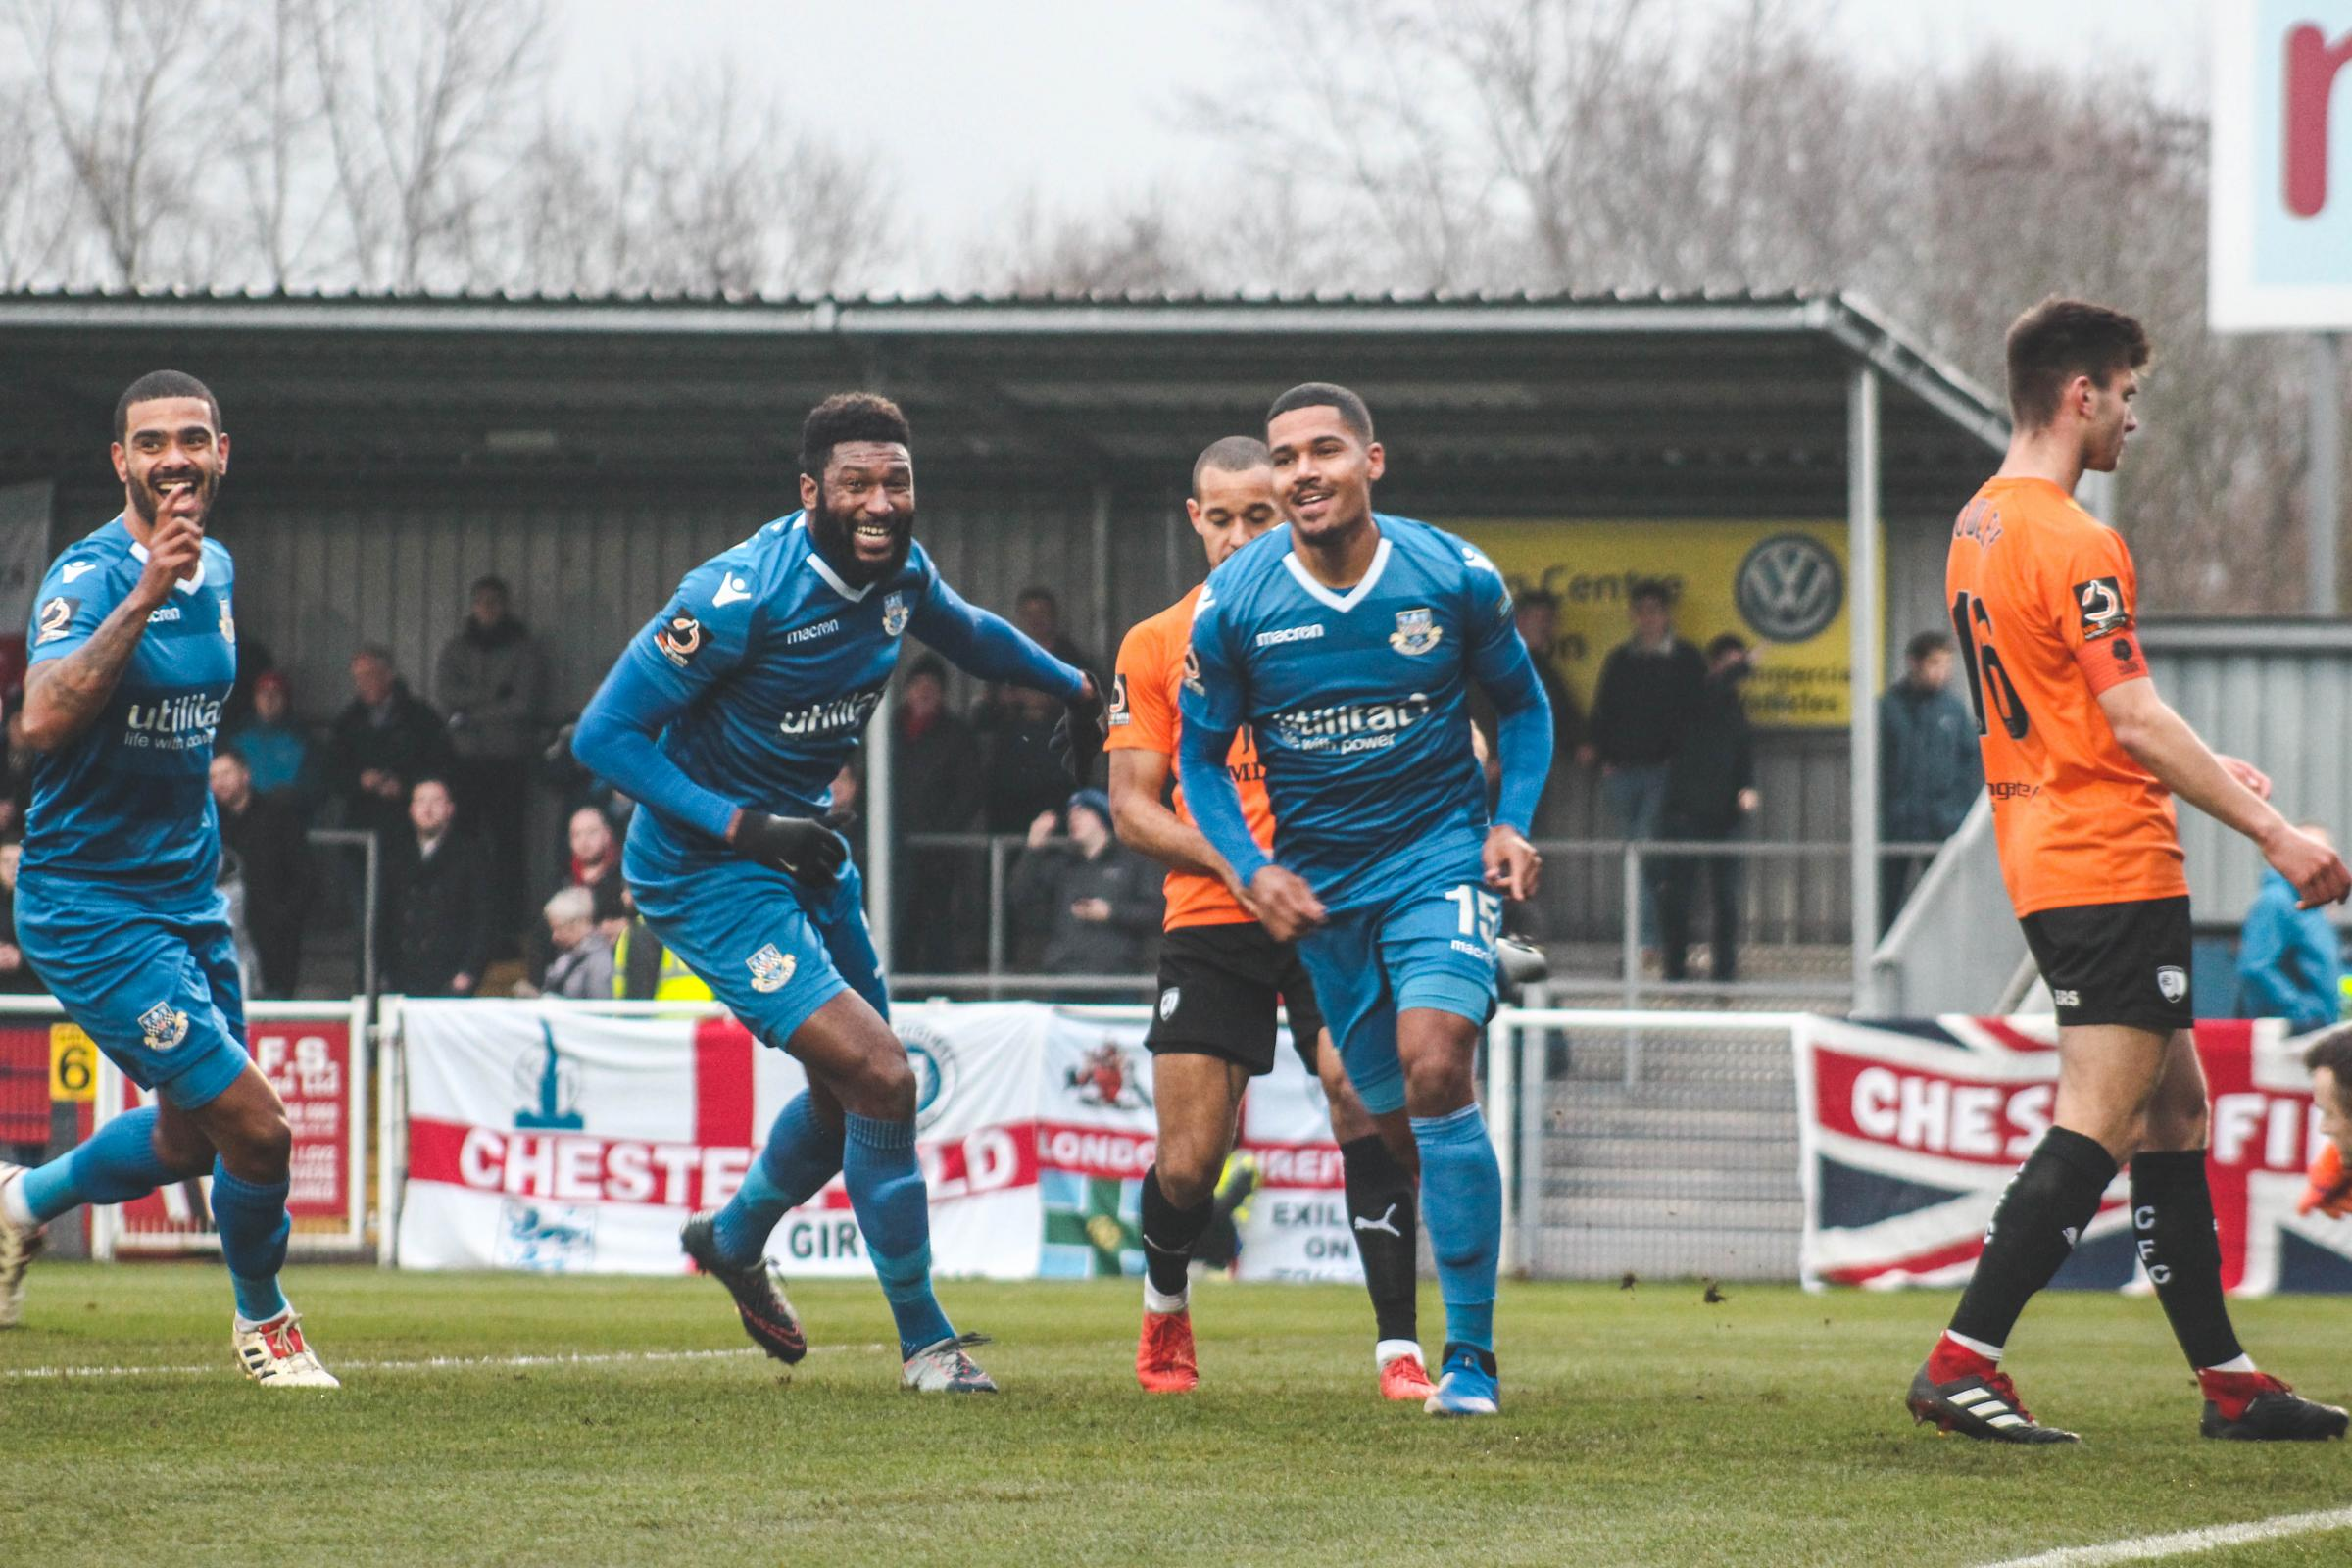 Alex Wynter (right, blue) runs away after scoring. Photo: Tom Mulholland.